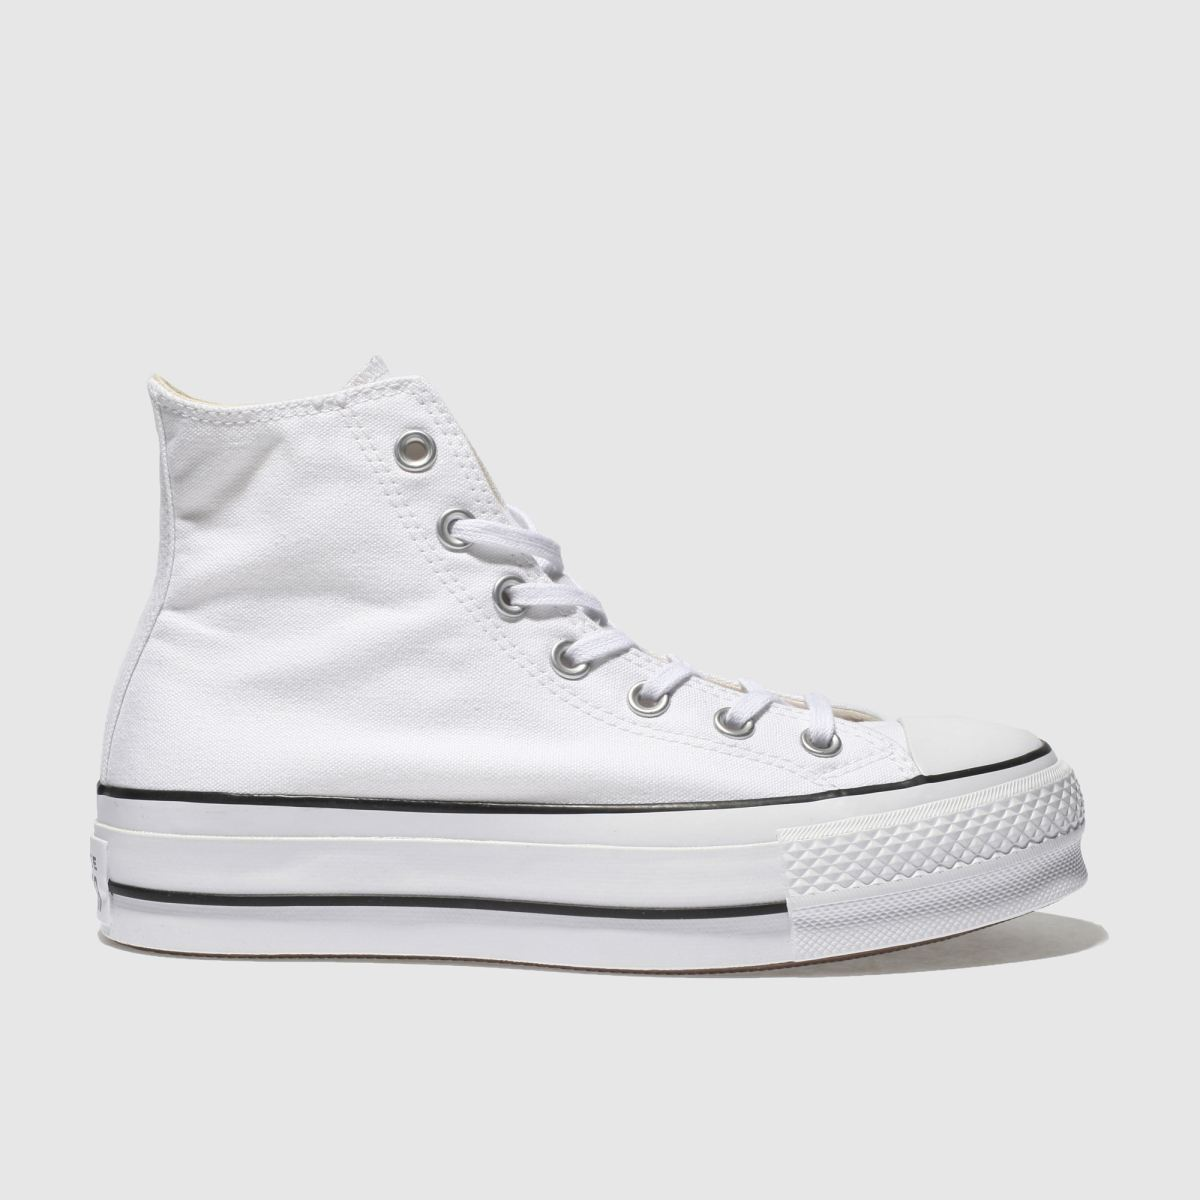 2251638ebbb1 Converse White Chuck Taylor All Star Lift Hi Trainers